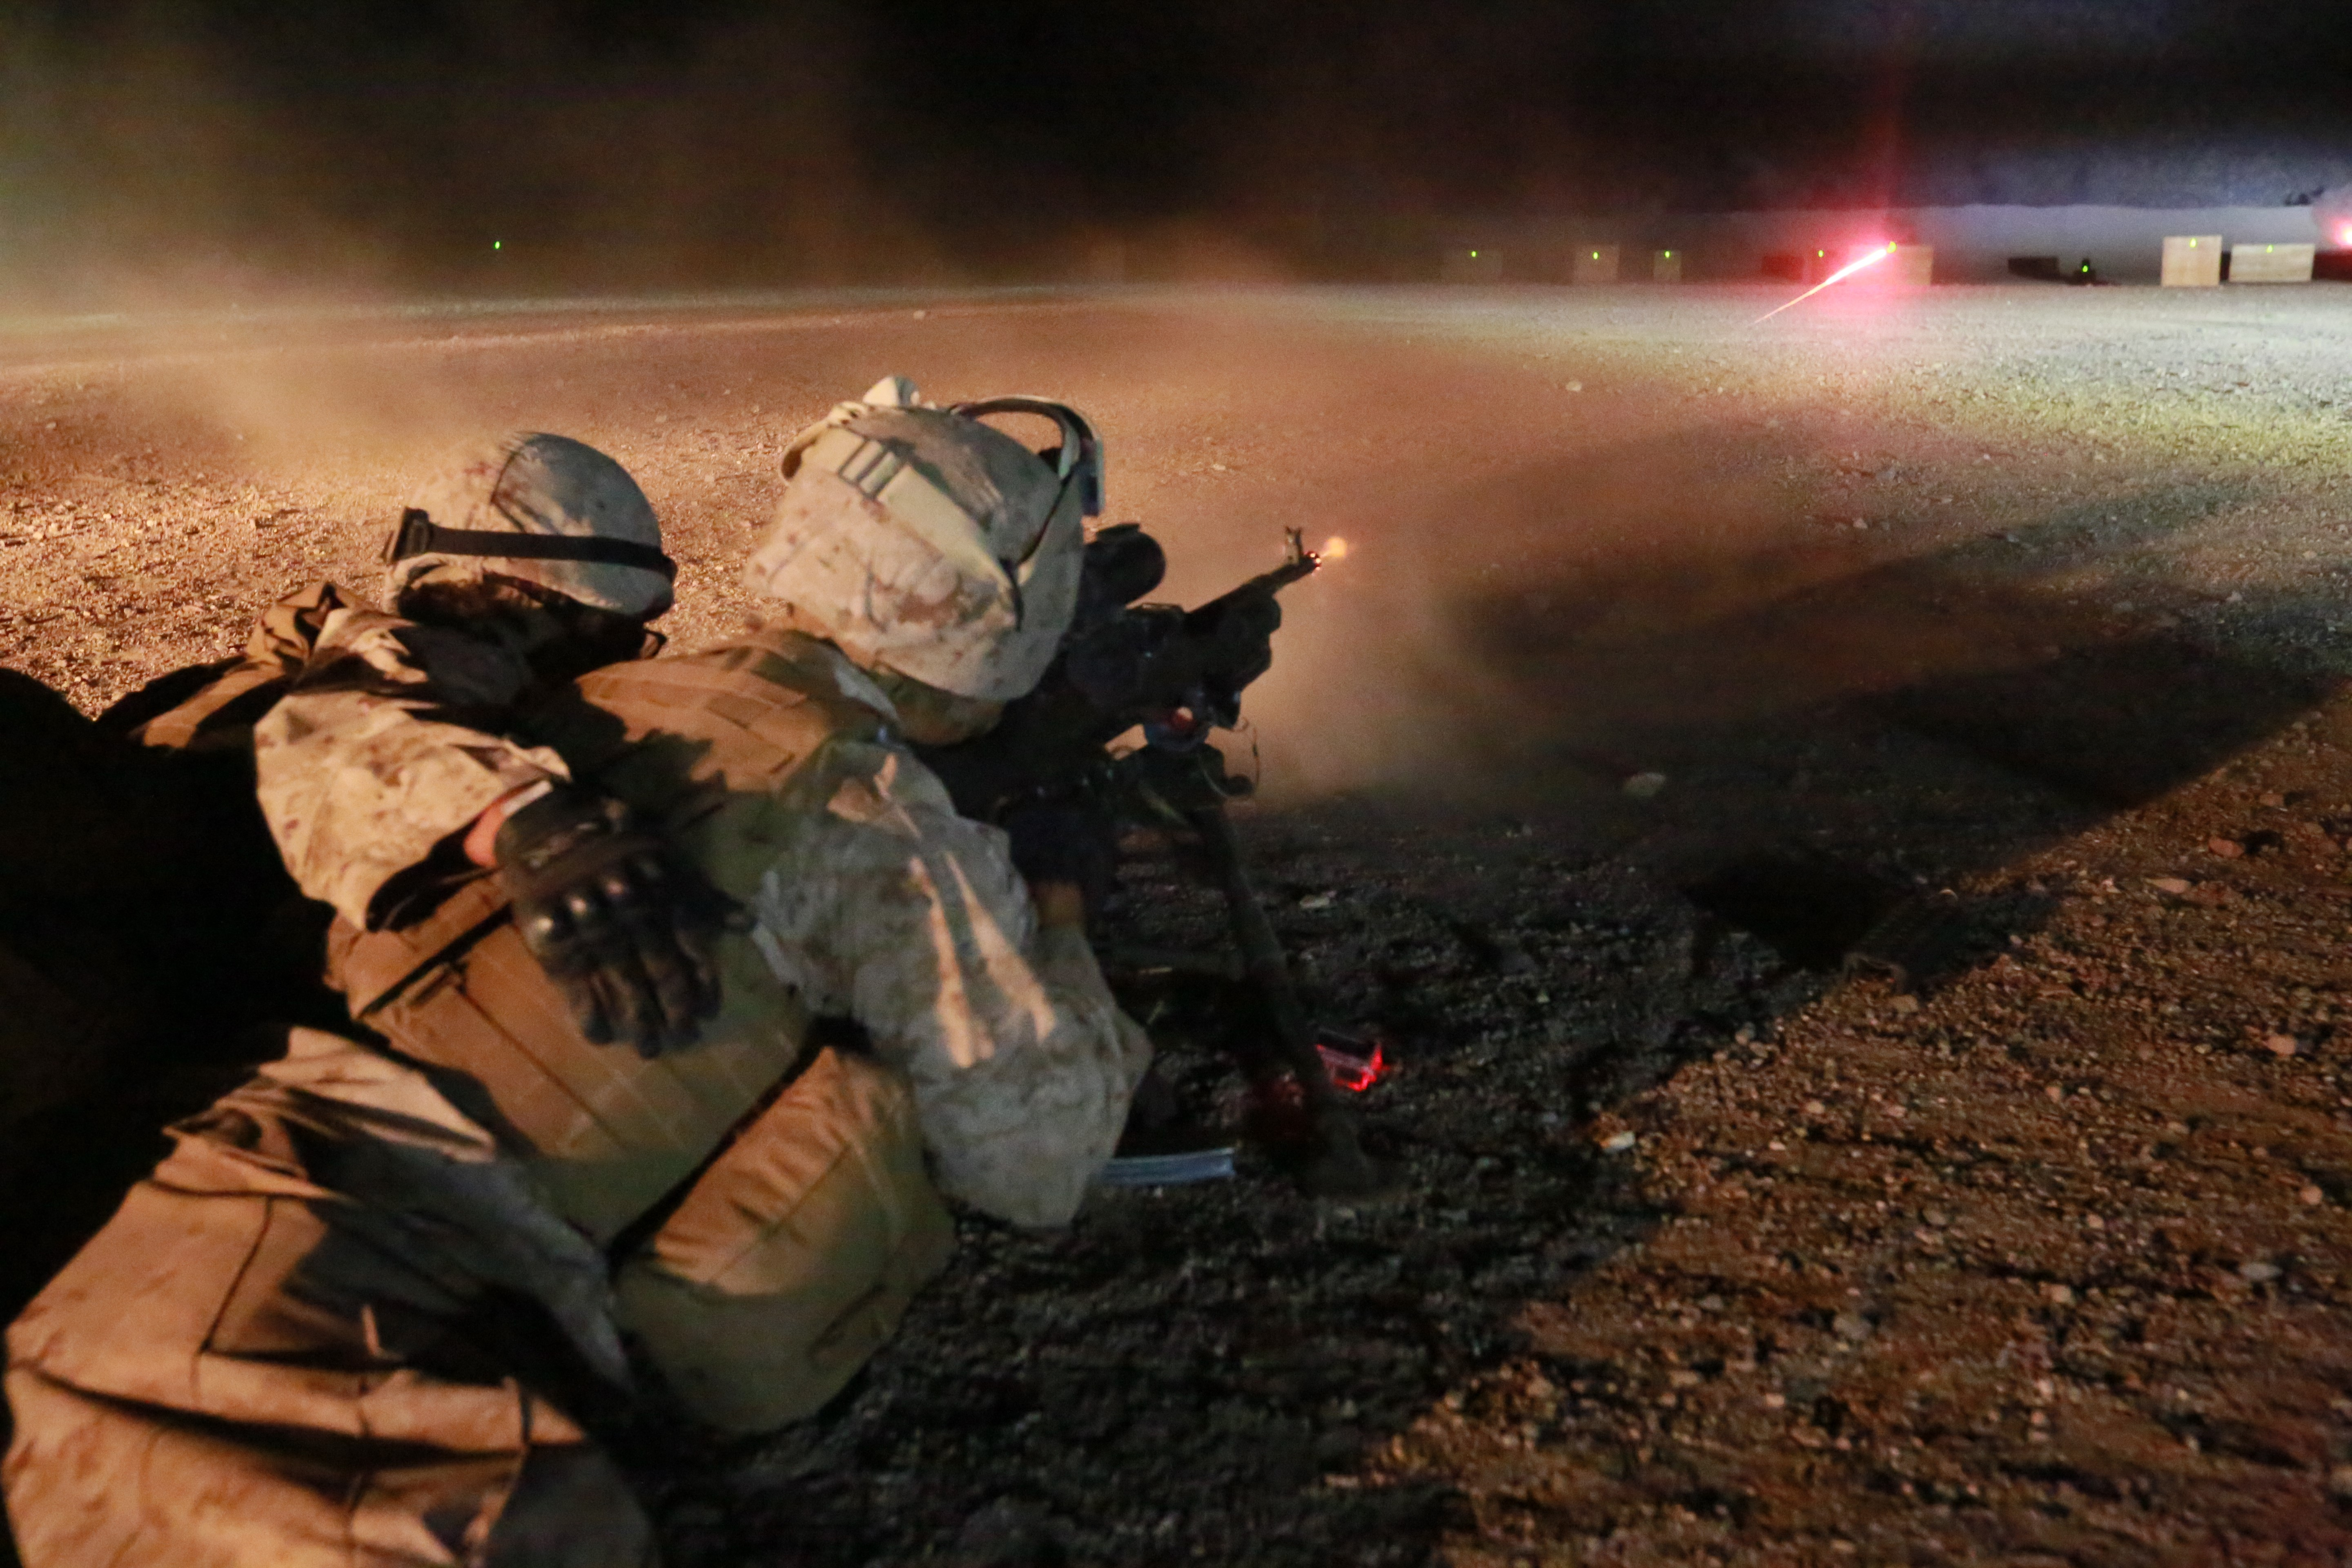 150722-M-TJ275-167 ARTA BEACH, Djibouti (July 22, 2015) U.S. Marine Lance Cpl. Zachary Palacio engages his target with an M240B squad automatic weapon during machine gun sustainment training. Palacio is a motor transport operator with Combat Logistics Battalion 15, 15th Marine Expeditionary Unit. Elements of the 15th Marine Expeditionary Unit are ashore in Djibouti for sustainment training to maintain and enhance the skills they developed during their pre-deployment training period.  The 15th MEU is currently deployed in support of maritime security operations and theater security cooperation efforts in the U.S. 5th and 6th Fleet areas of operation (U.S. Marine Corps photo by Sgt. Steve H. Lopez/Released)